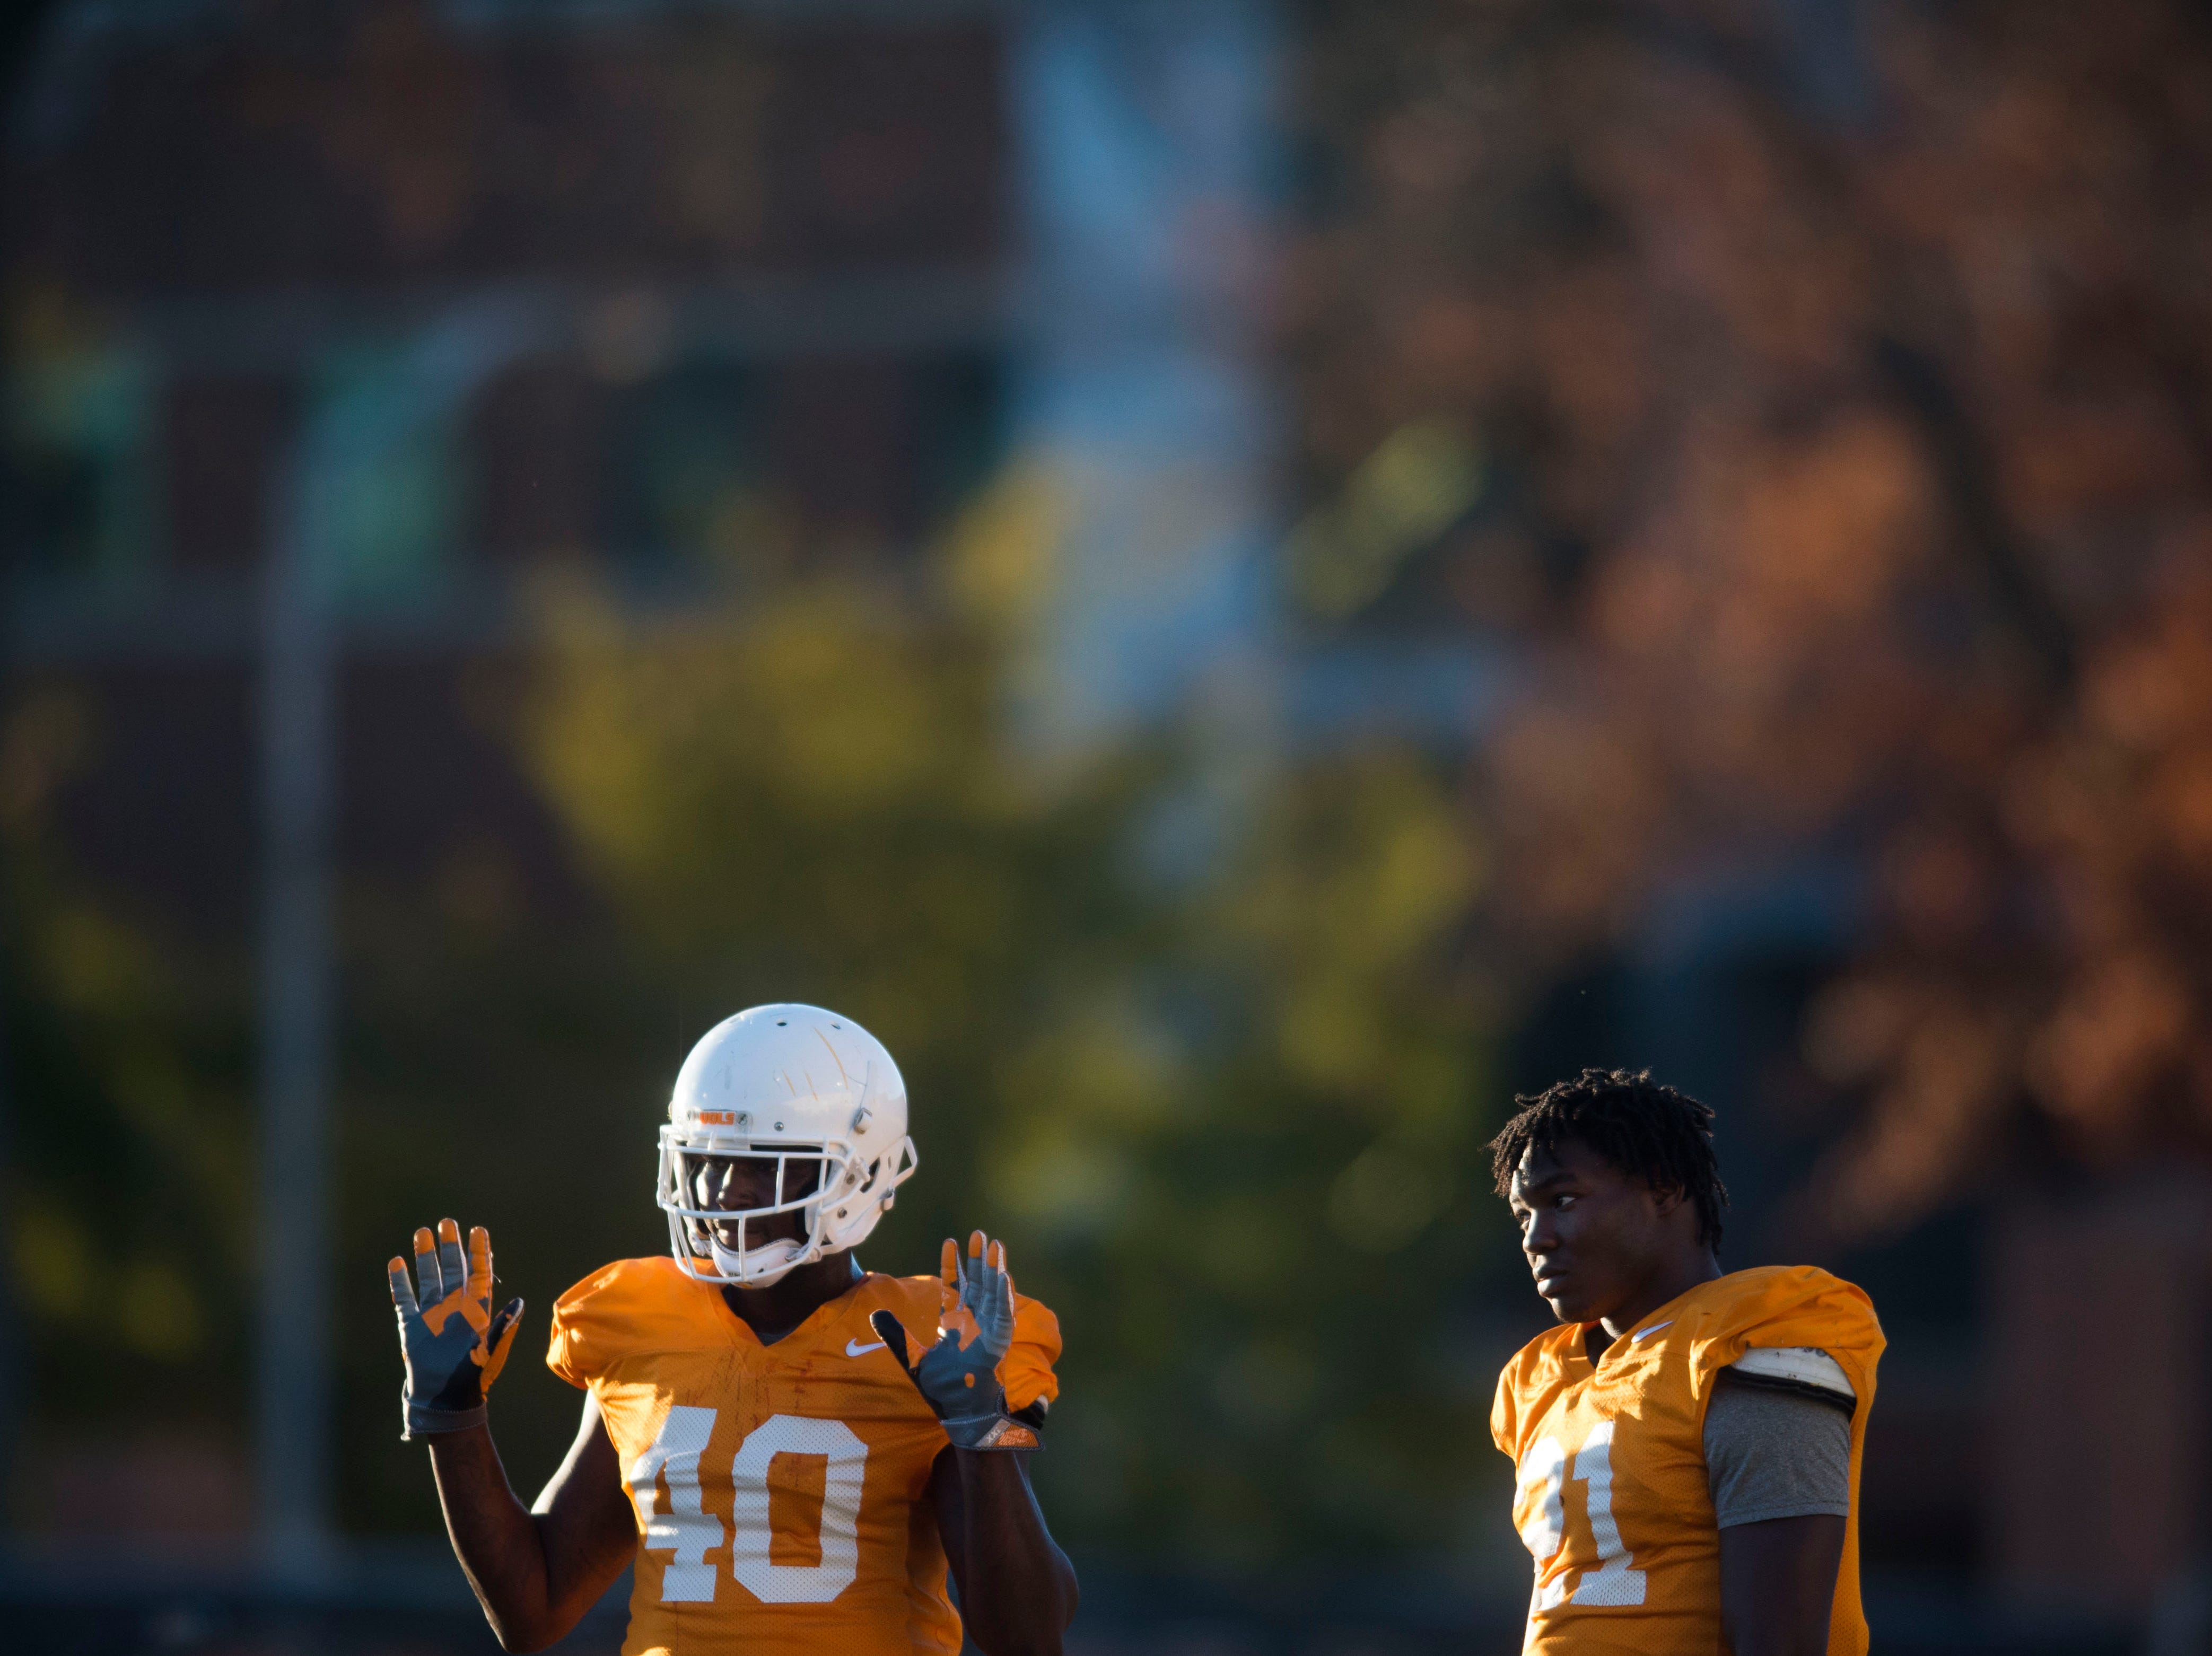 Tennessee linebacker JJ Peterson (40) and Tennessee linebacker Shanon Reid (21) stand on the field during Vols football practice Wednesday, Nov. 21, 2018.